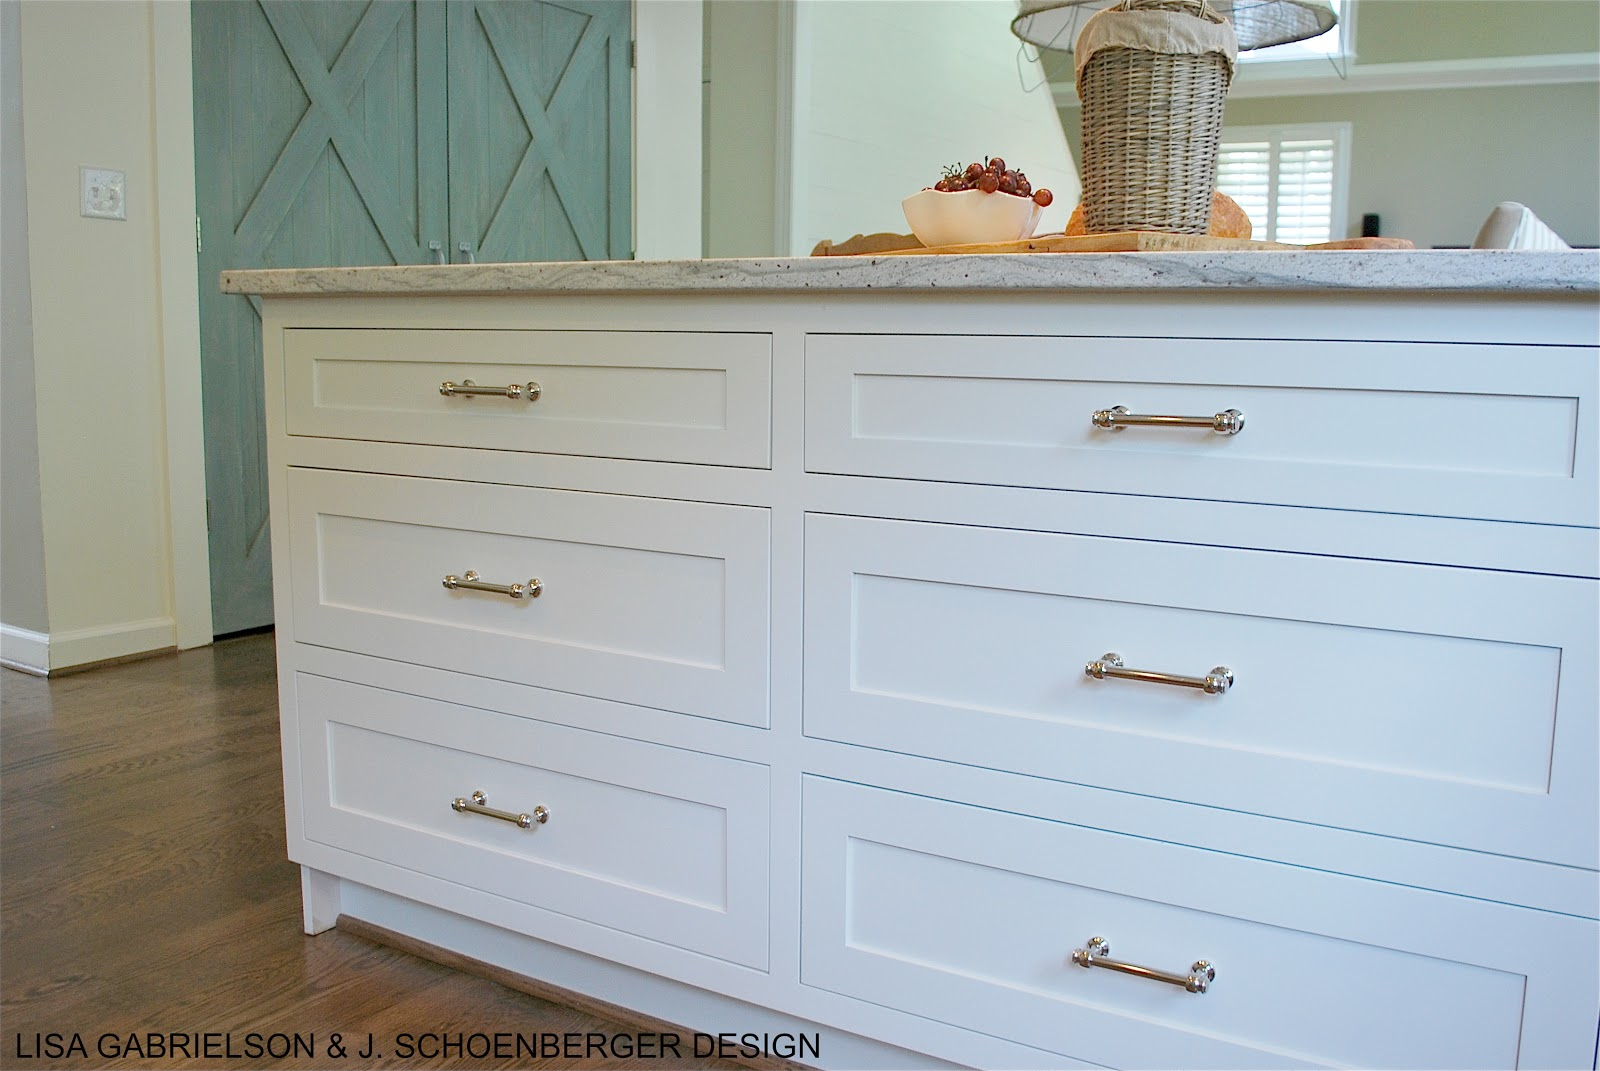 Long Cabinet Pulls Before And After: Client Kitchen Reveal